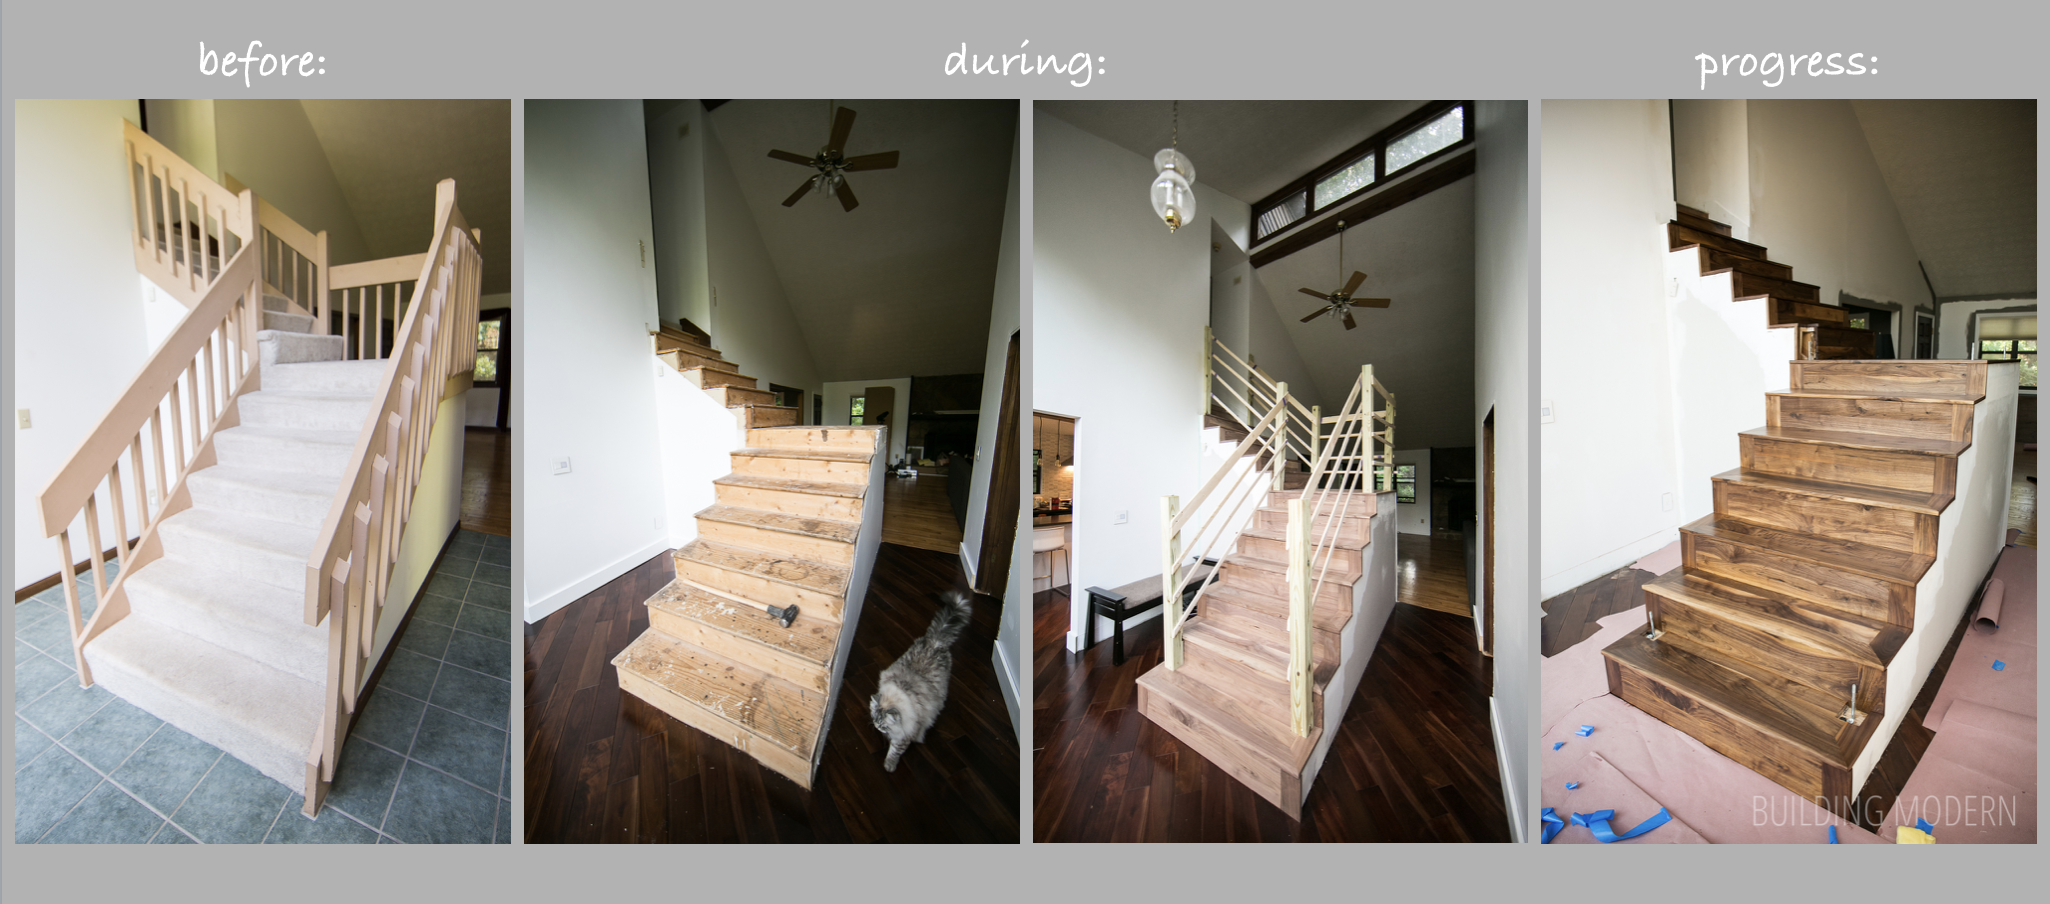 before during and progress of our stair renovaion